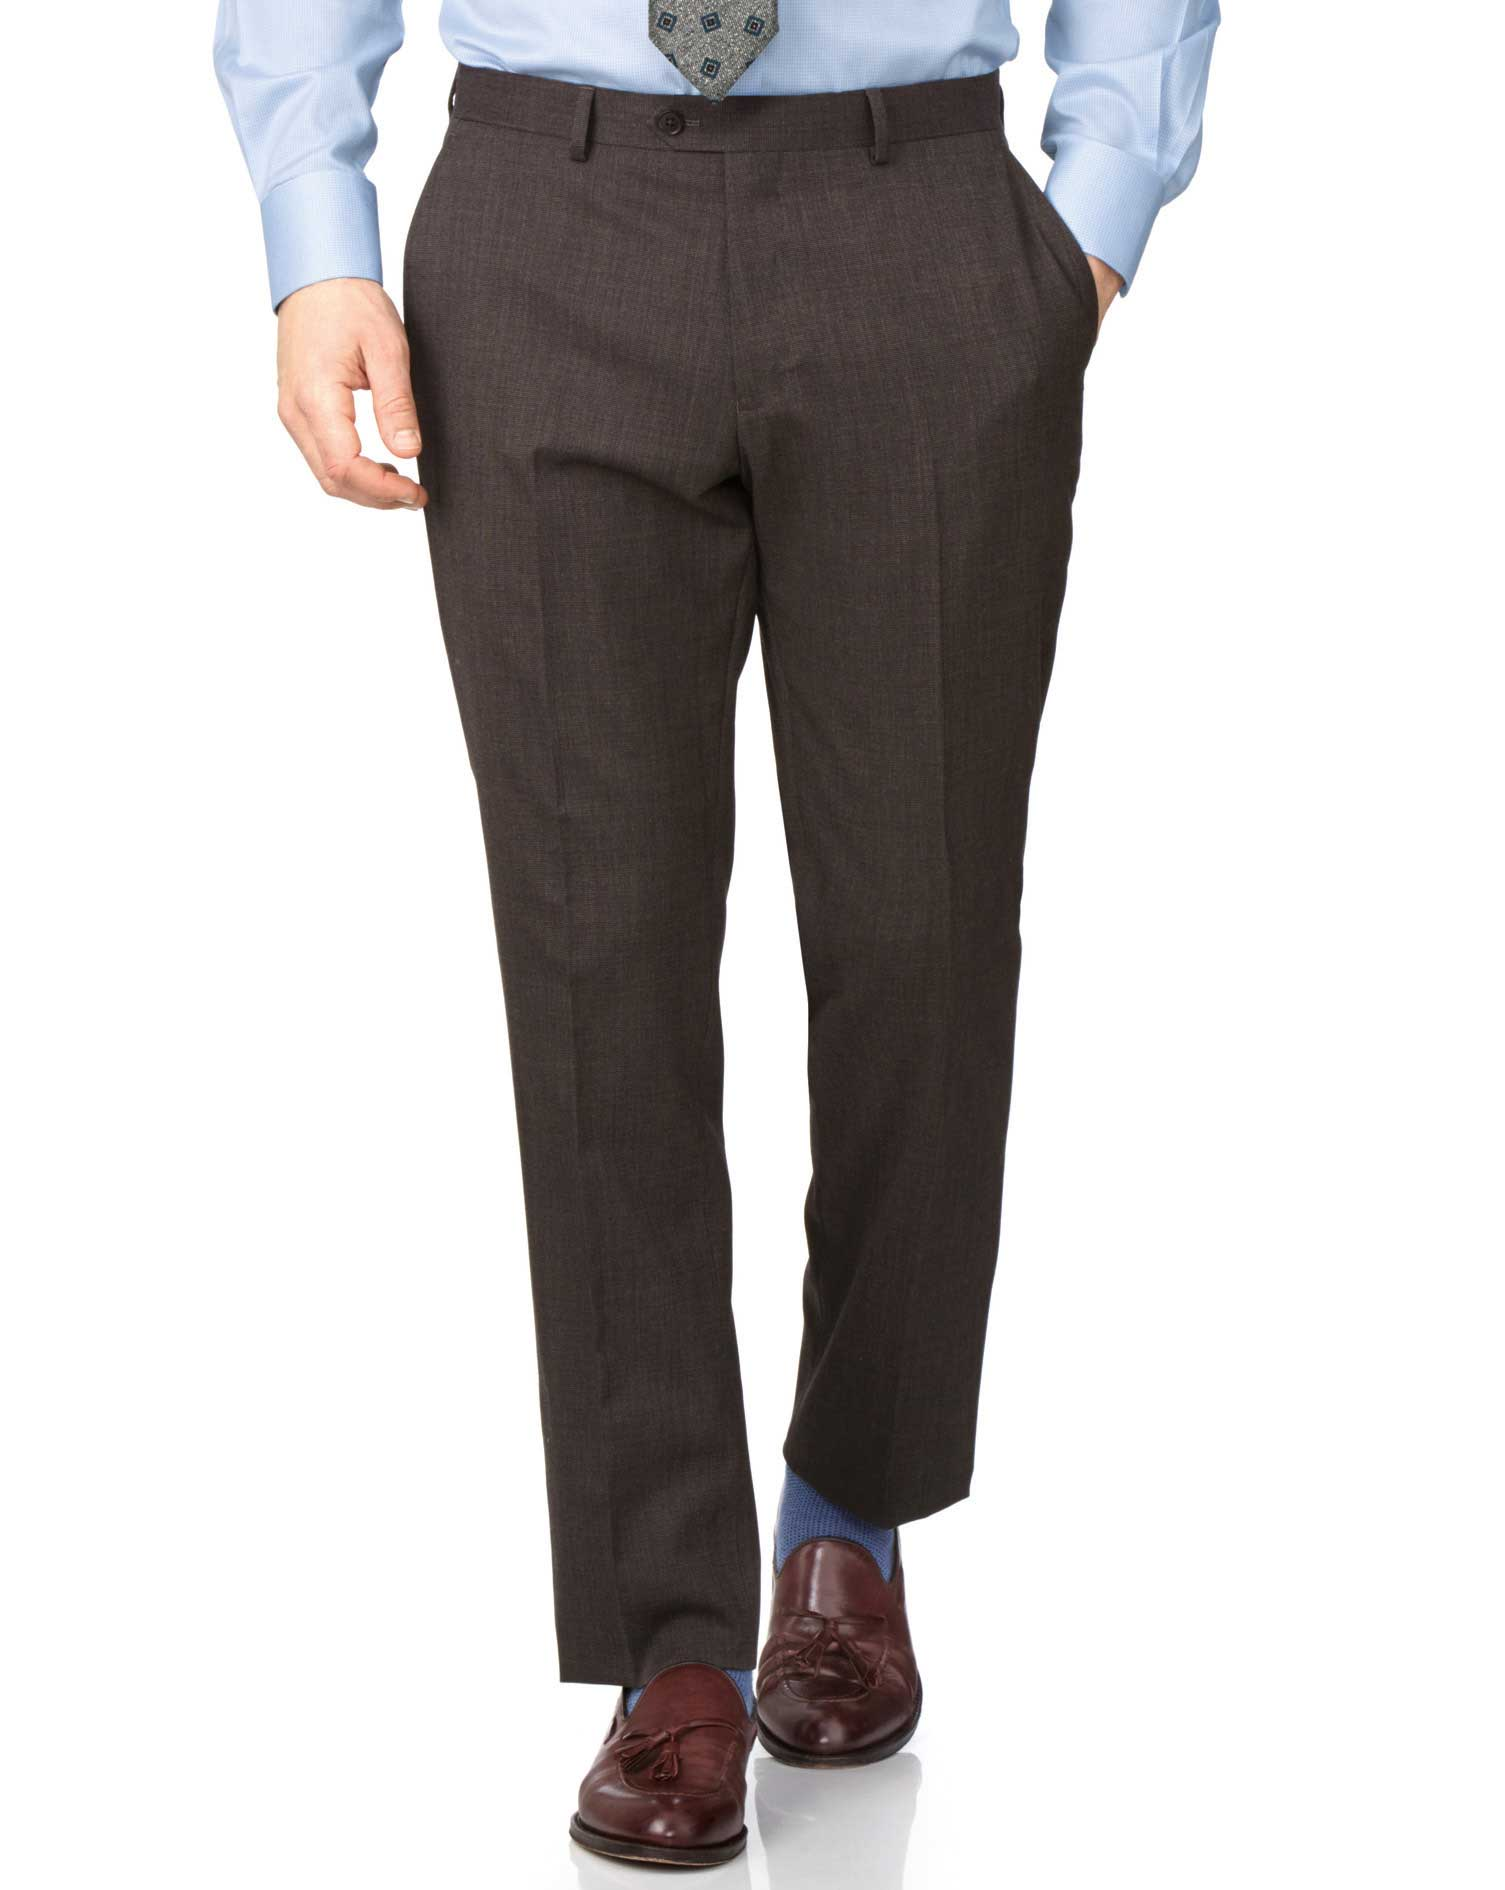 Brown Slim Fit End-On-End Business Suit Trouser Size W42 L38 by Charles Tyrwhitt